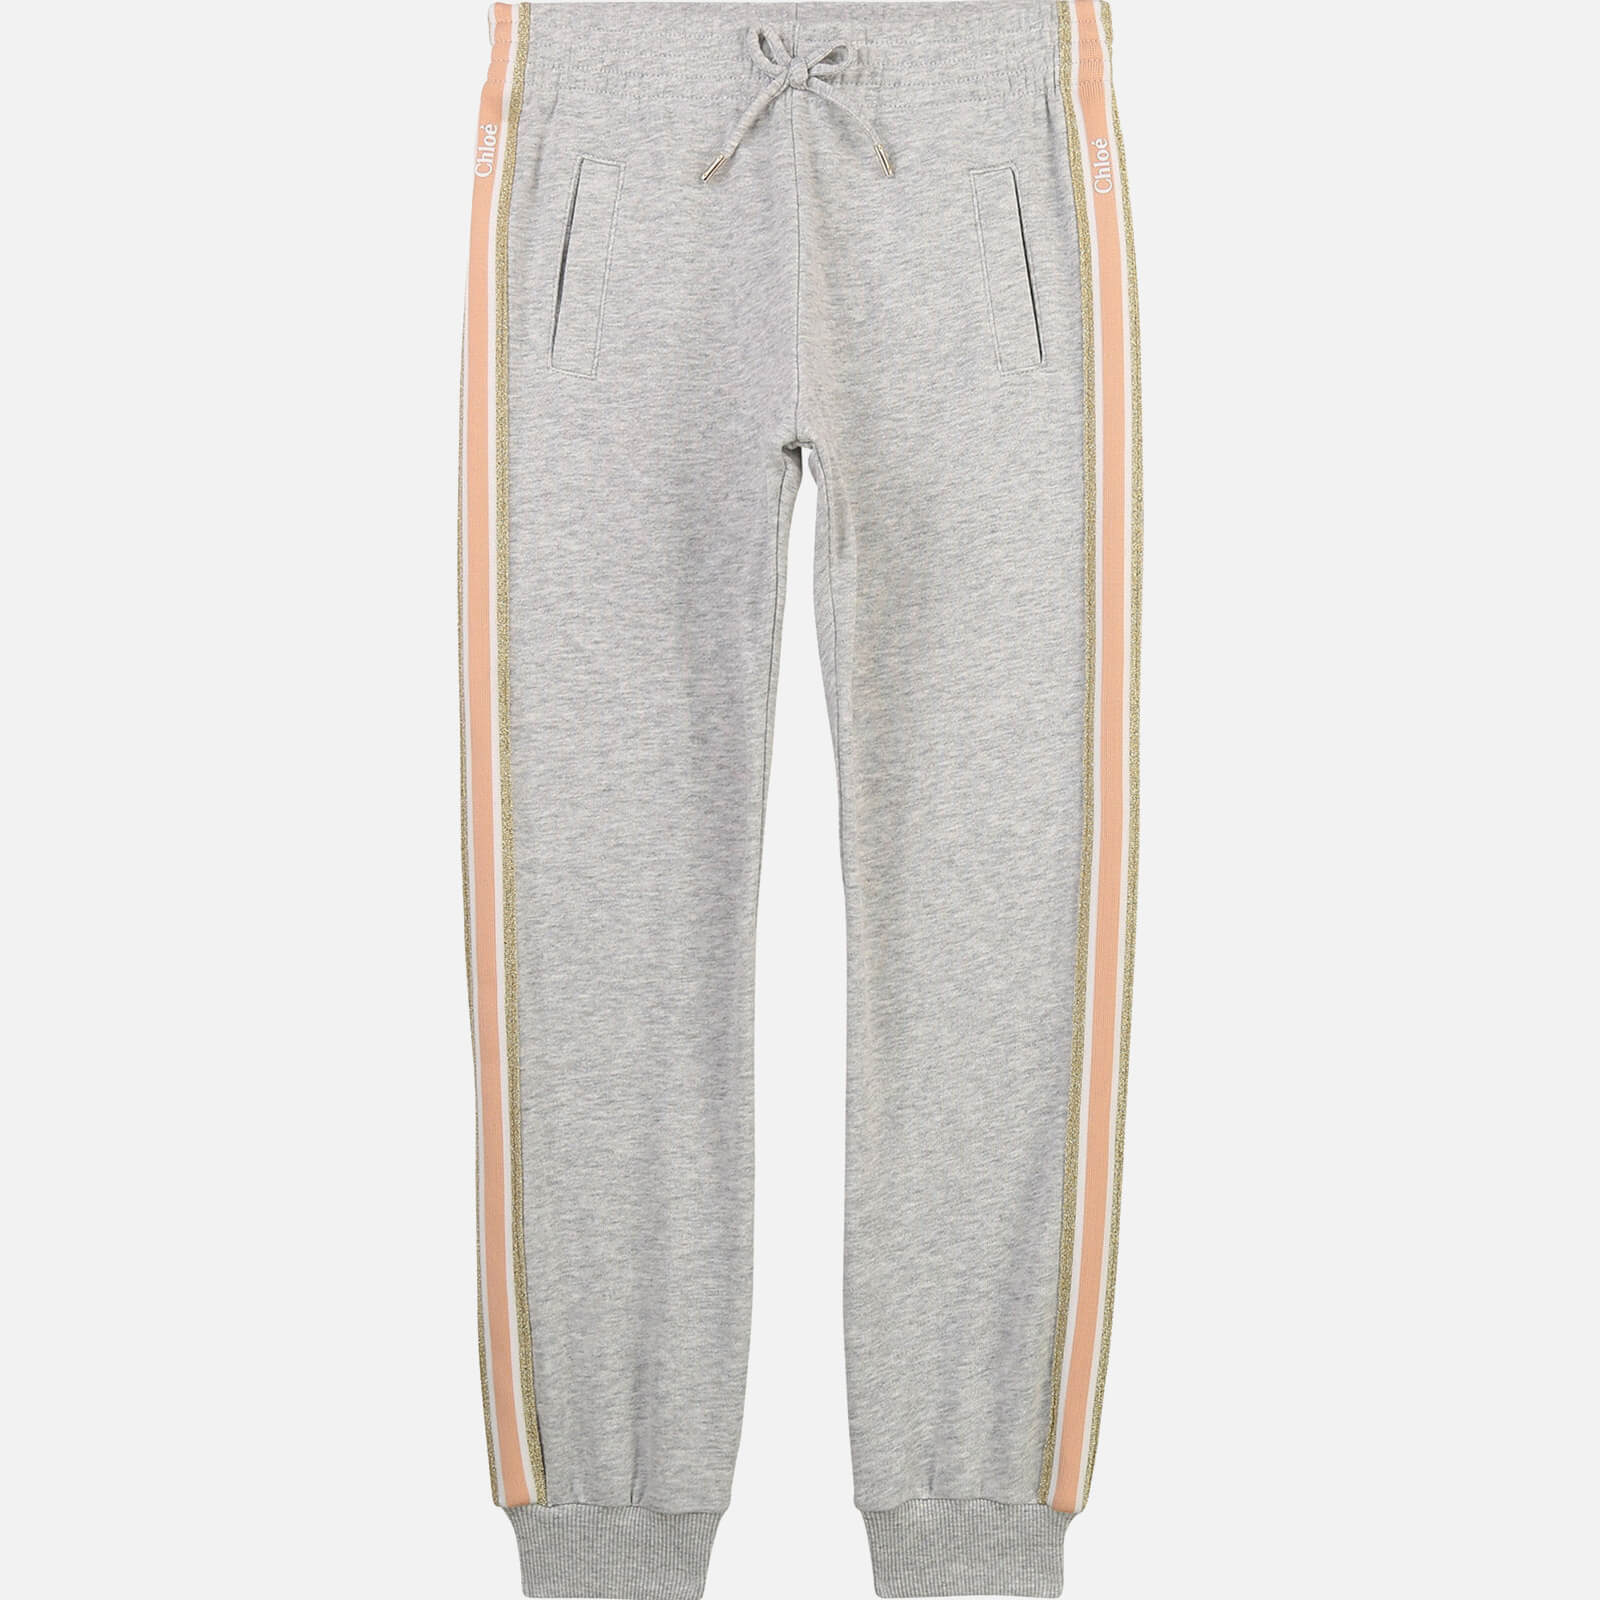 Chloé Girls' Sweatpant Trousers - Chine Grey - 10 Years